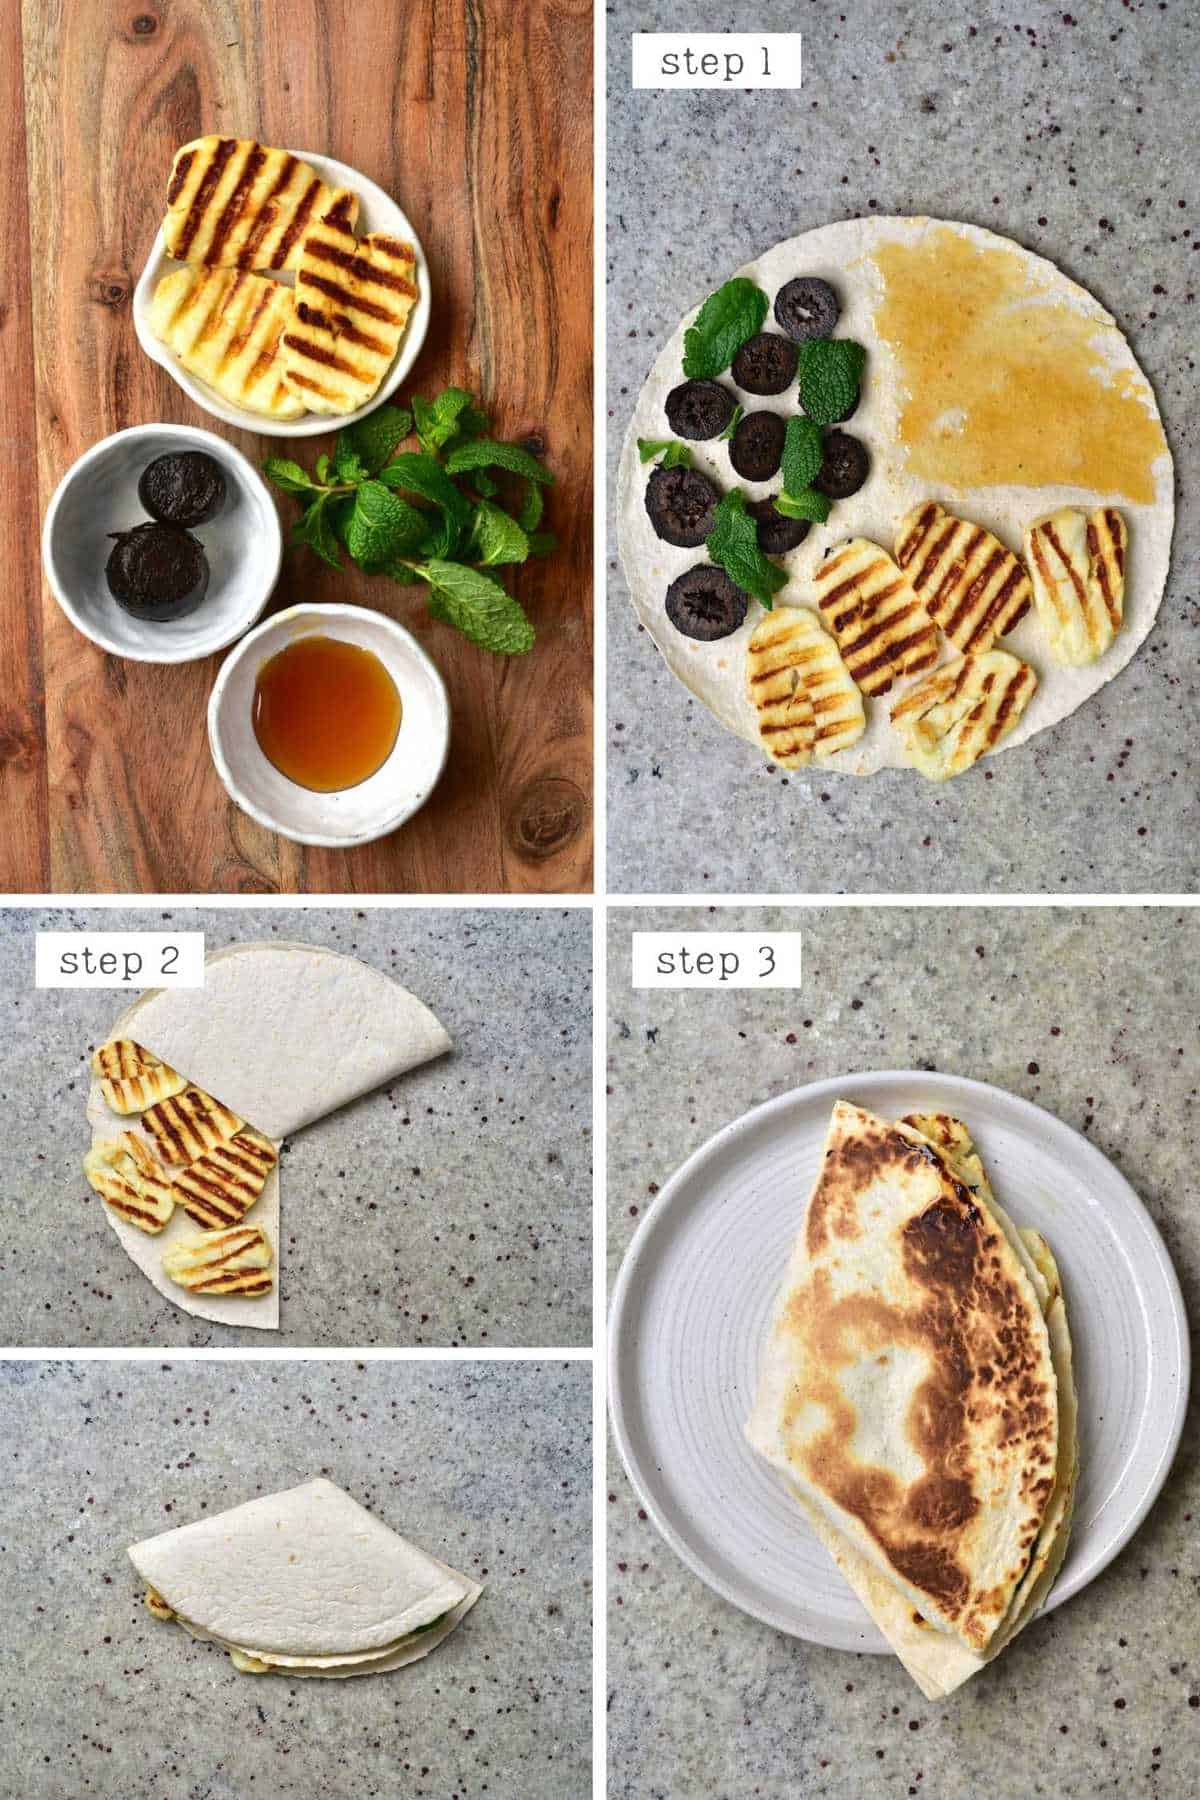 Steps for making Cypriot halloumi wrap